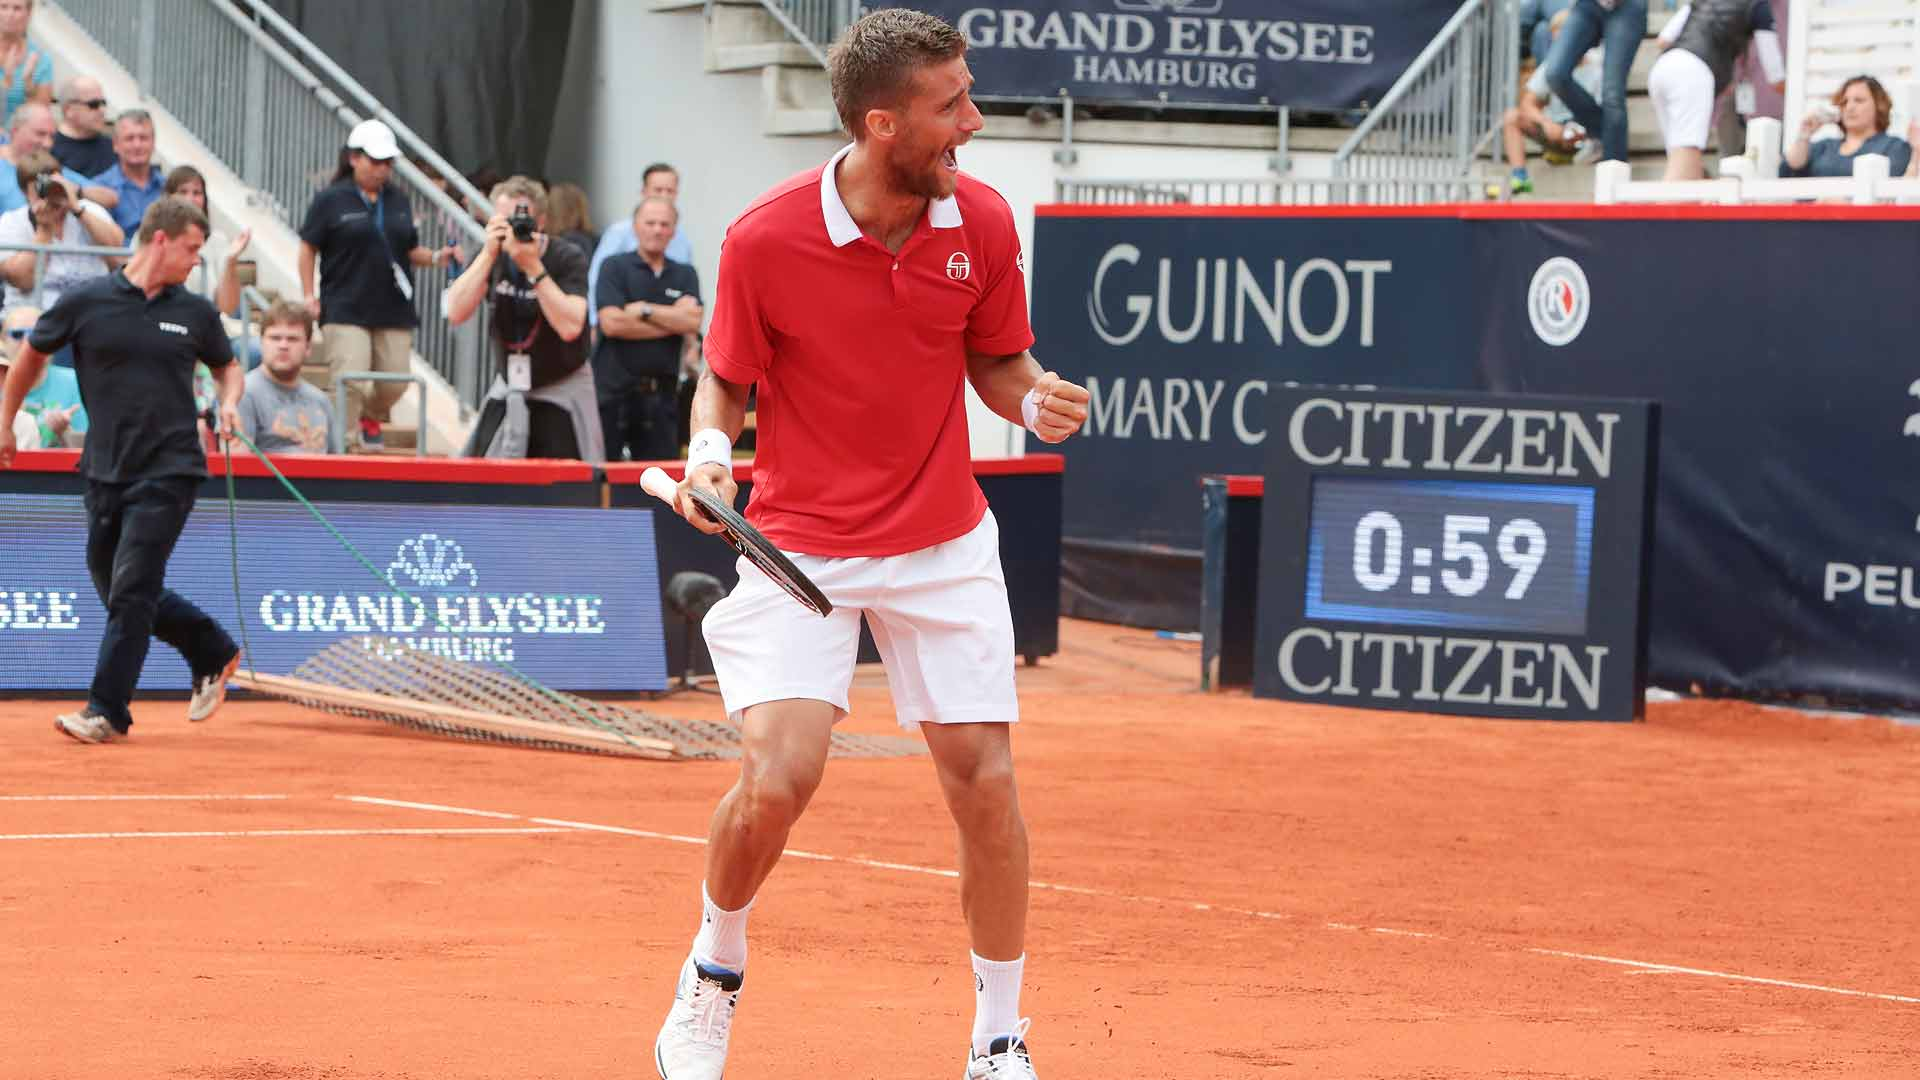 Martin Klizan didn't drop a set in capturing the German Tennis Championships 2016 in Hamburg.